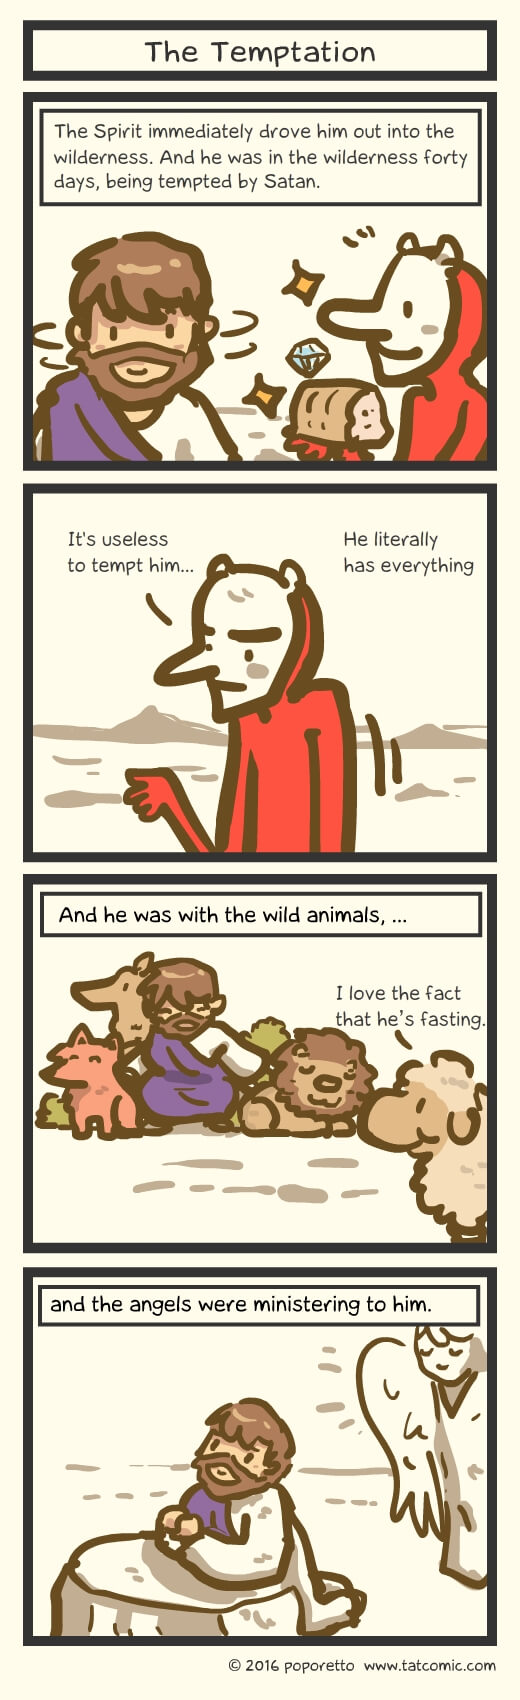 Christian Comic Strip the Gospel of Mark Book of Mark Jesus tempted by the demon in the wilderness